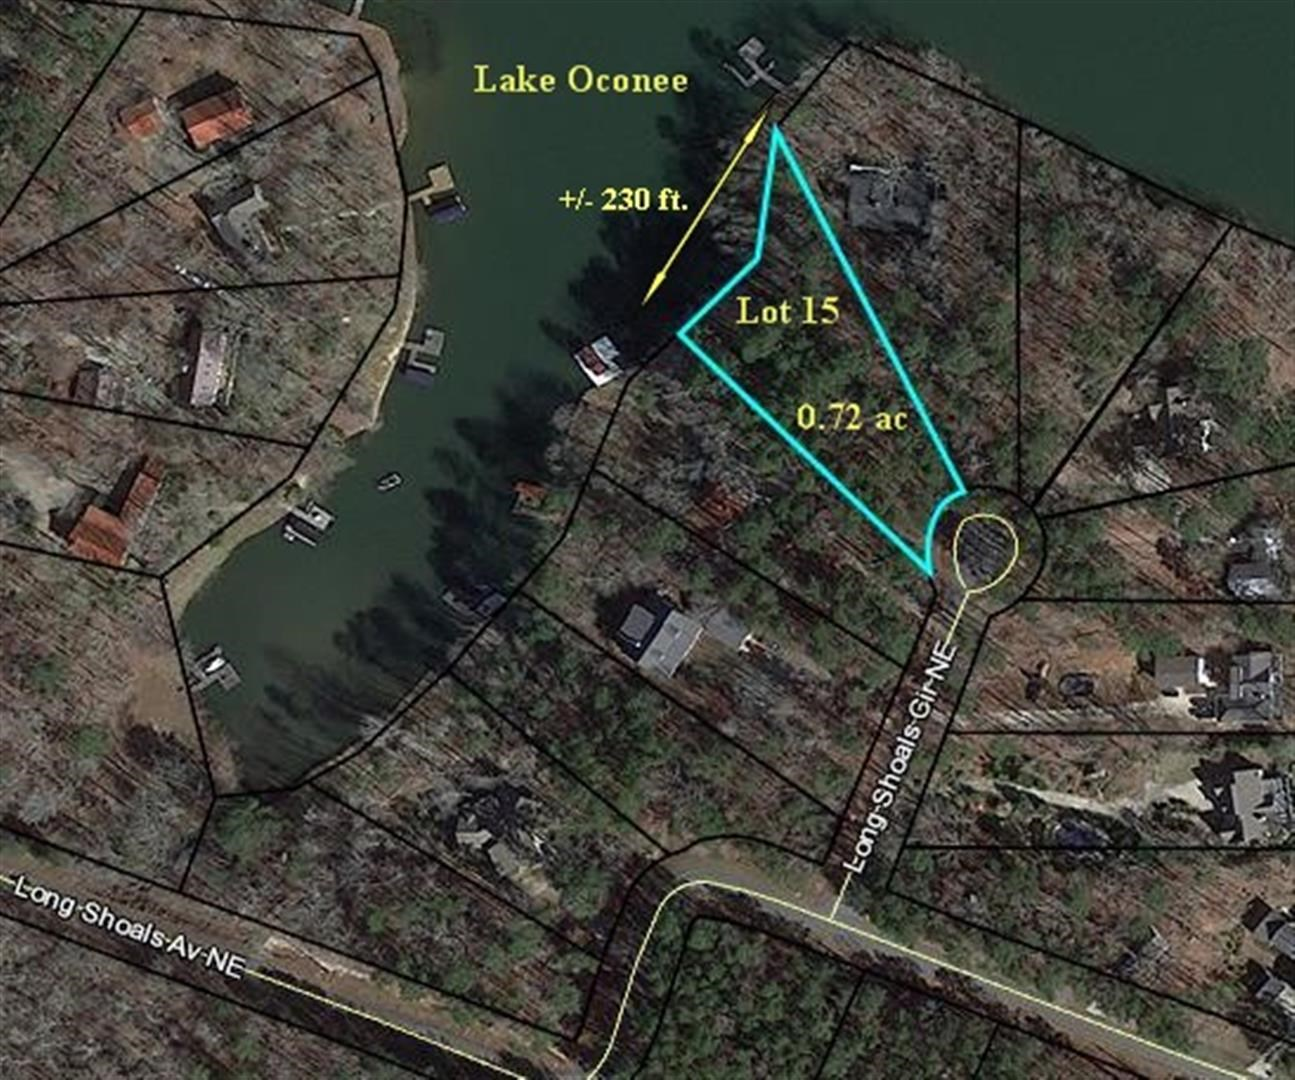 REDUCED PRICE! Great lot in super community - very nice homes around lot. Good water, big cove ideal for boating and swimming. No dock now but should be approved for max dock with 200+ feet of shoreline -  need to check with Georgia Power. Small utility building located on the lot.